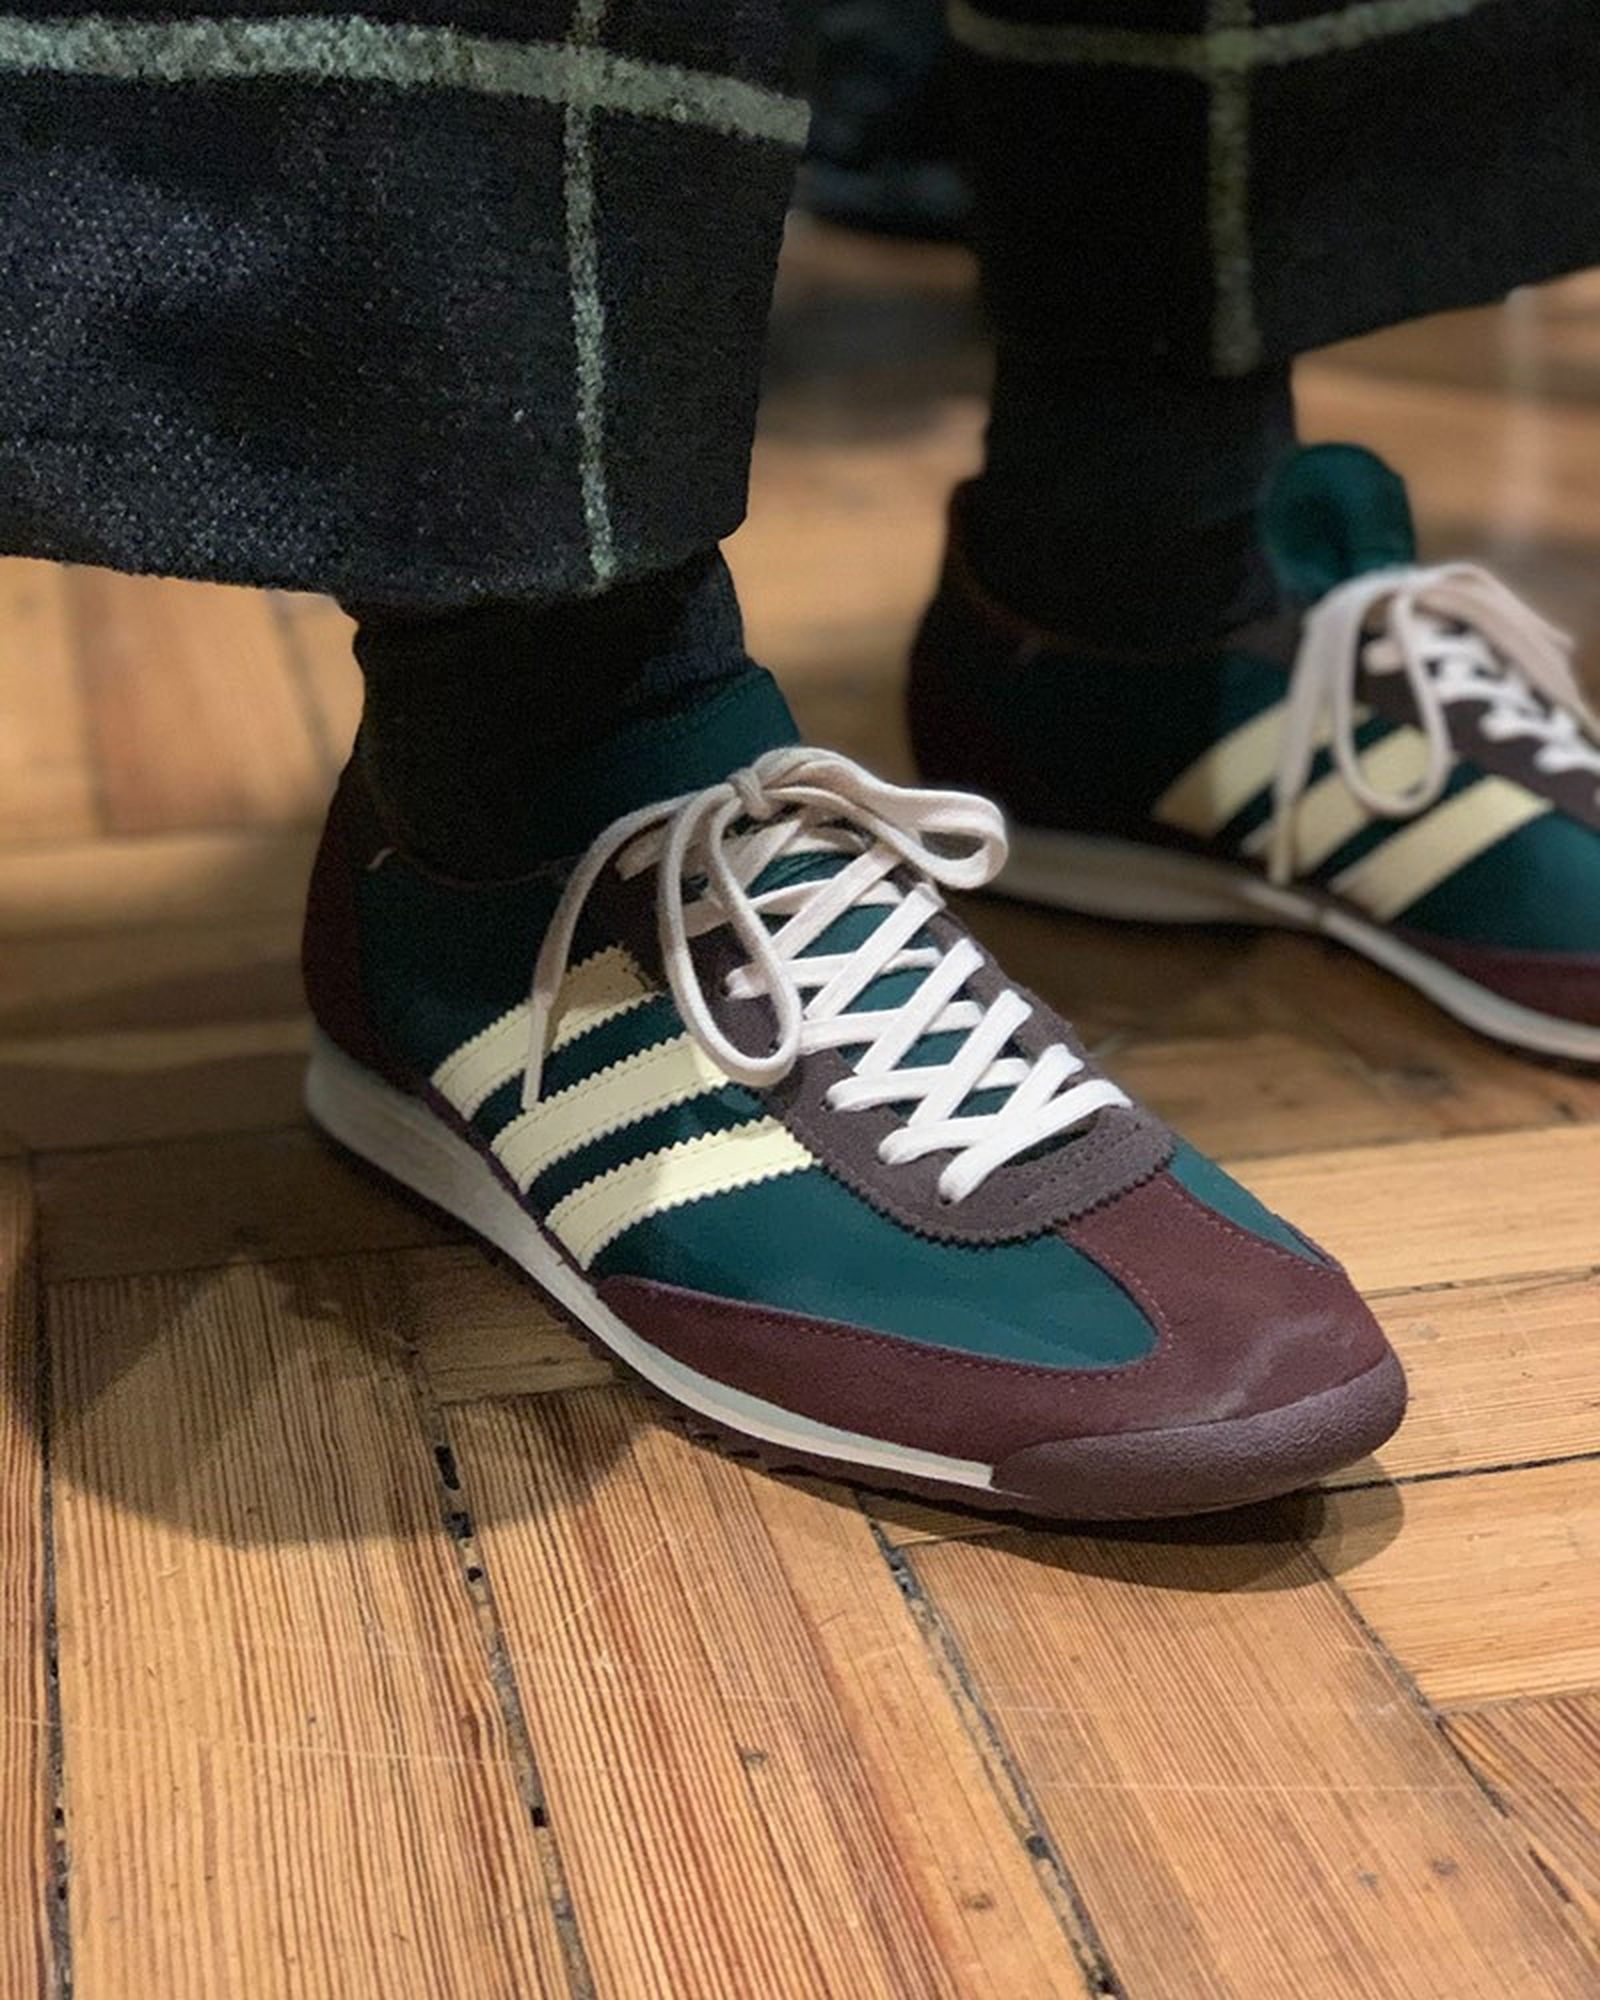 wales-bonner-adidas-collection-release-date-price-08